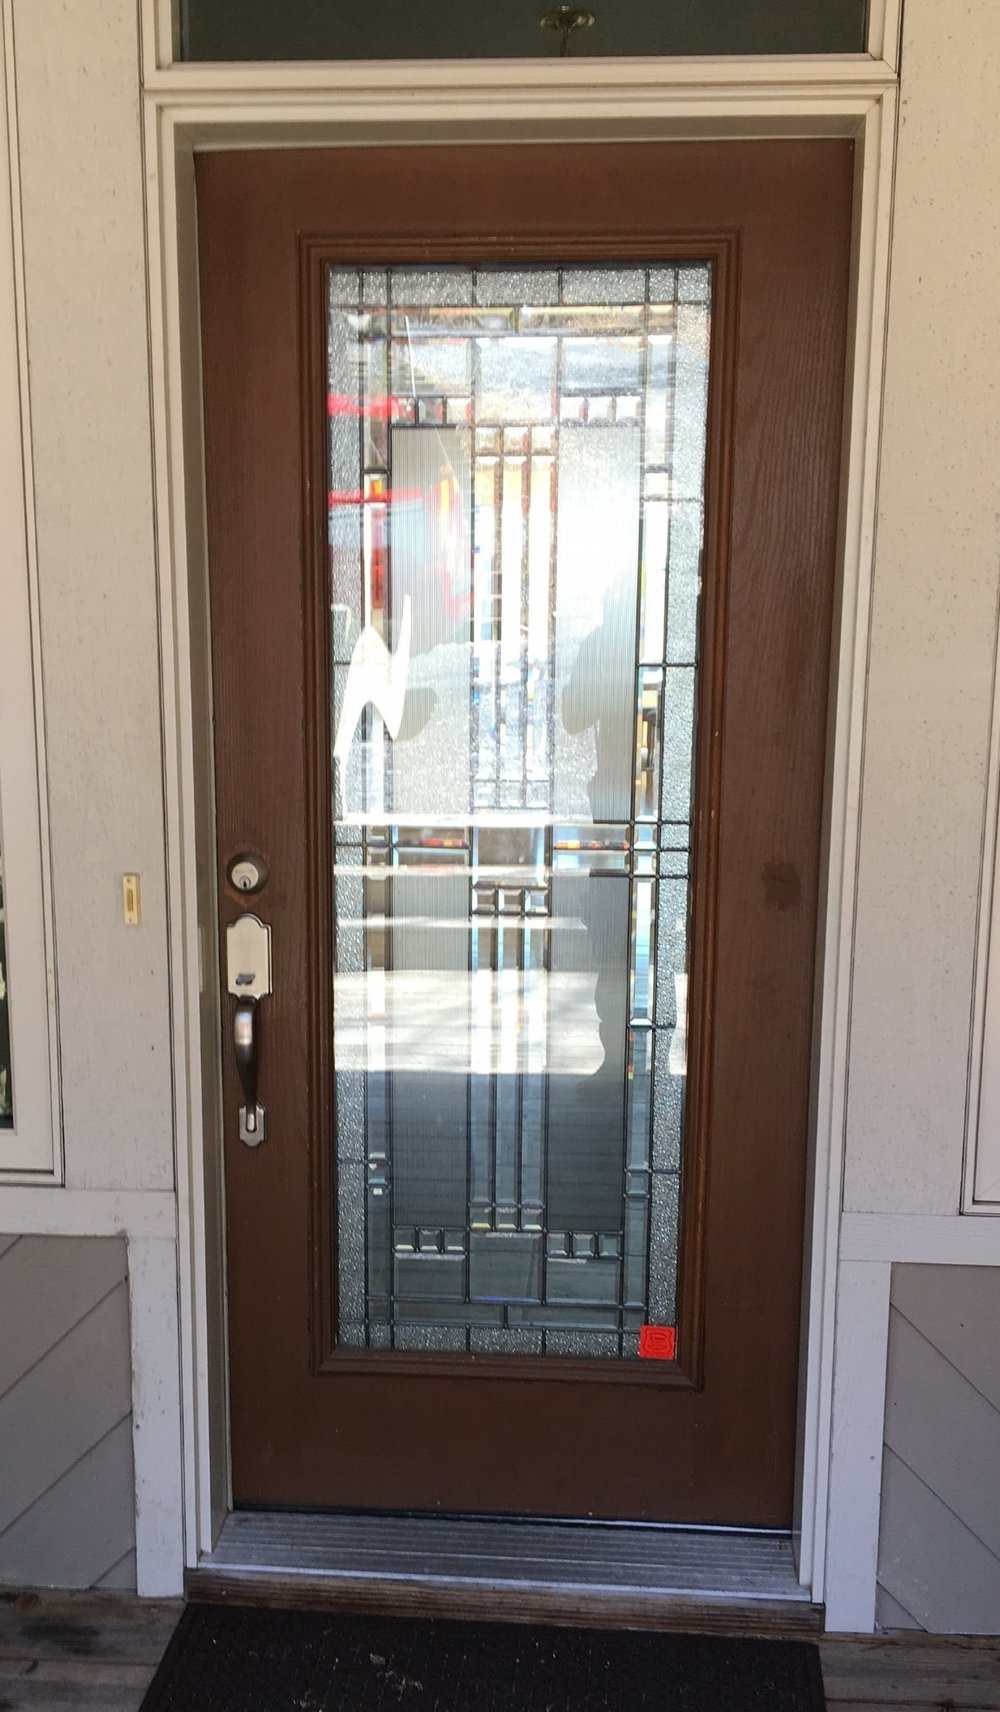 A Small Reflective Sticker Can Be Is Placed On The Lower Part Of The Front  Door